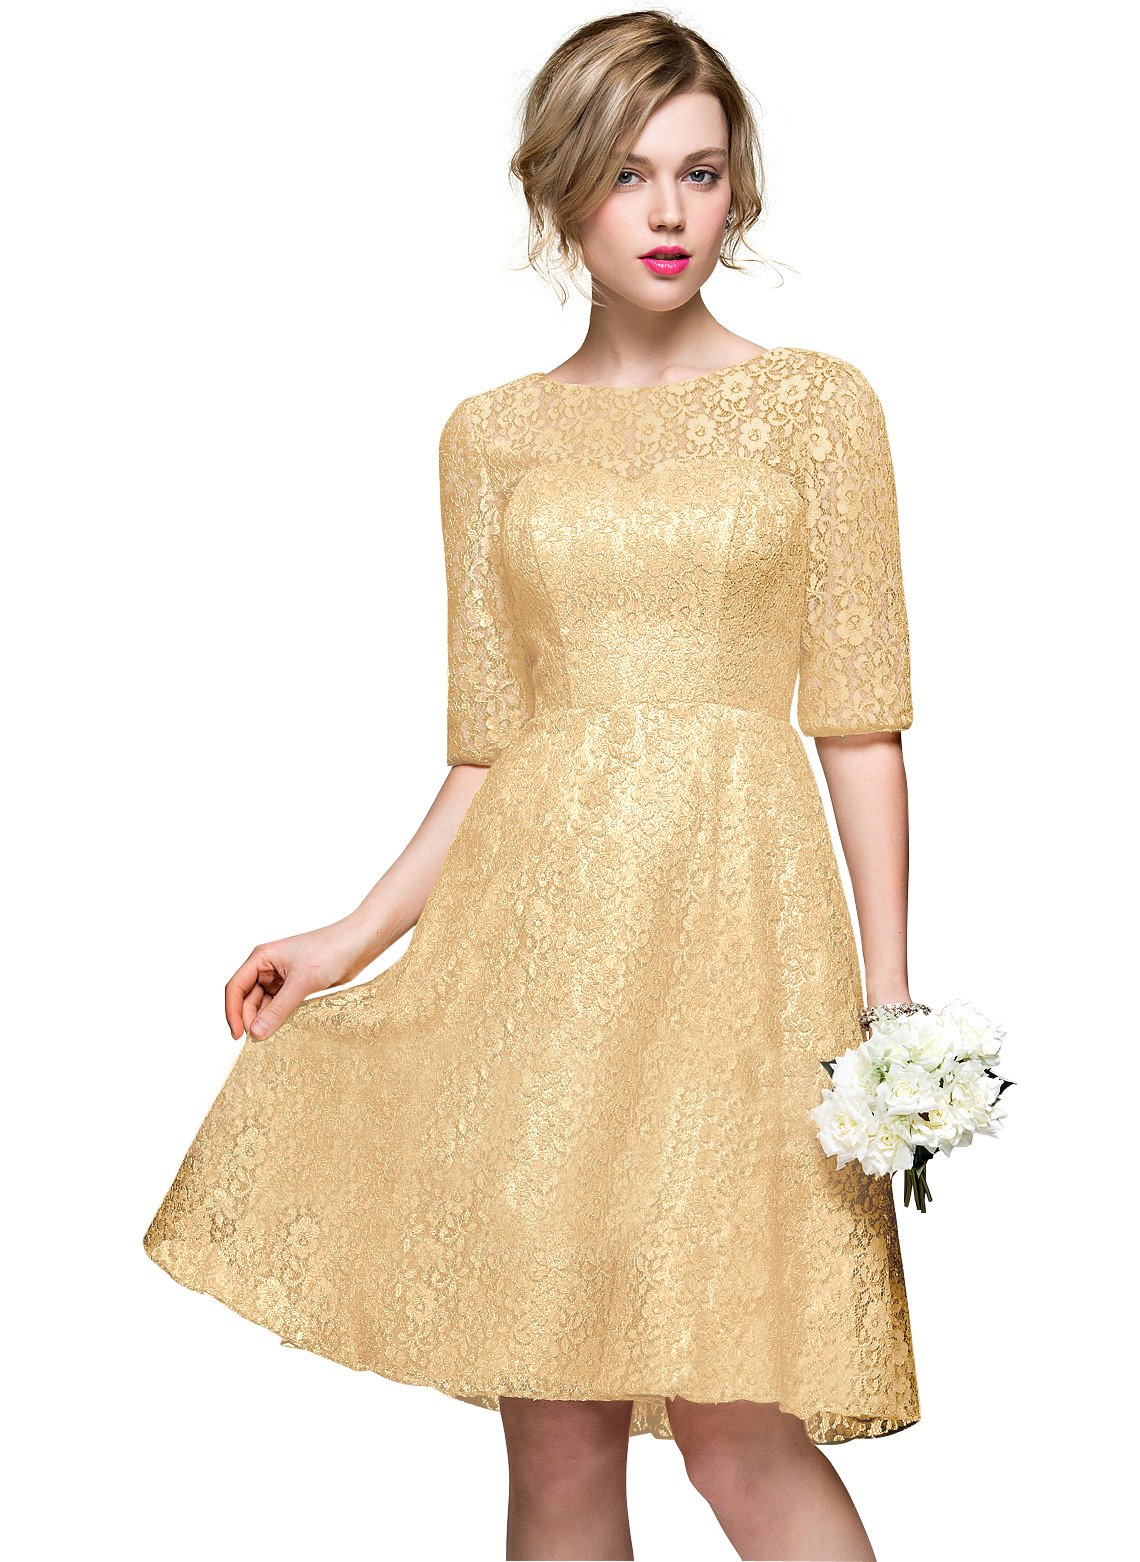 Loffy Women's Shoulder Lace Cocktail Homecoming Dress Gold Size 20